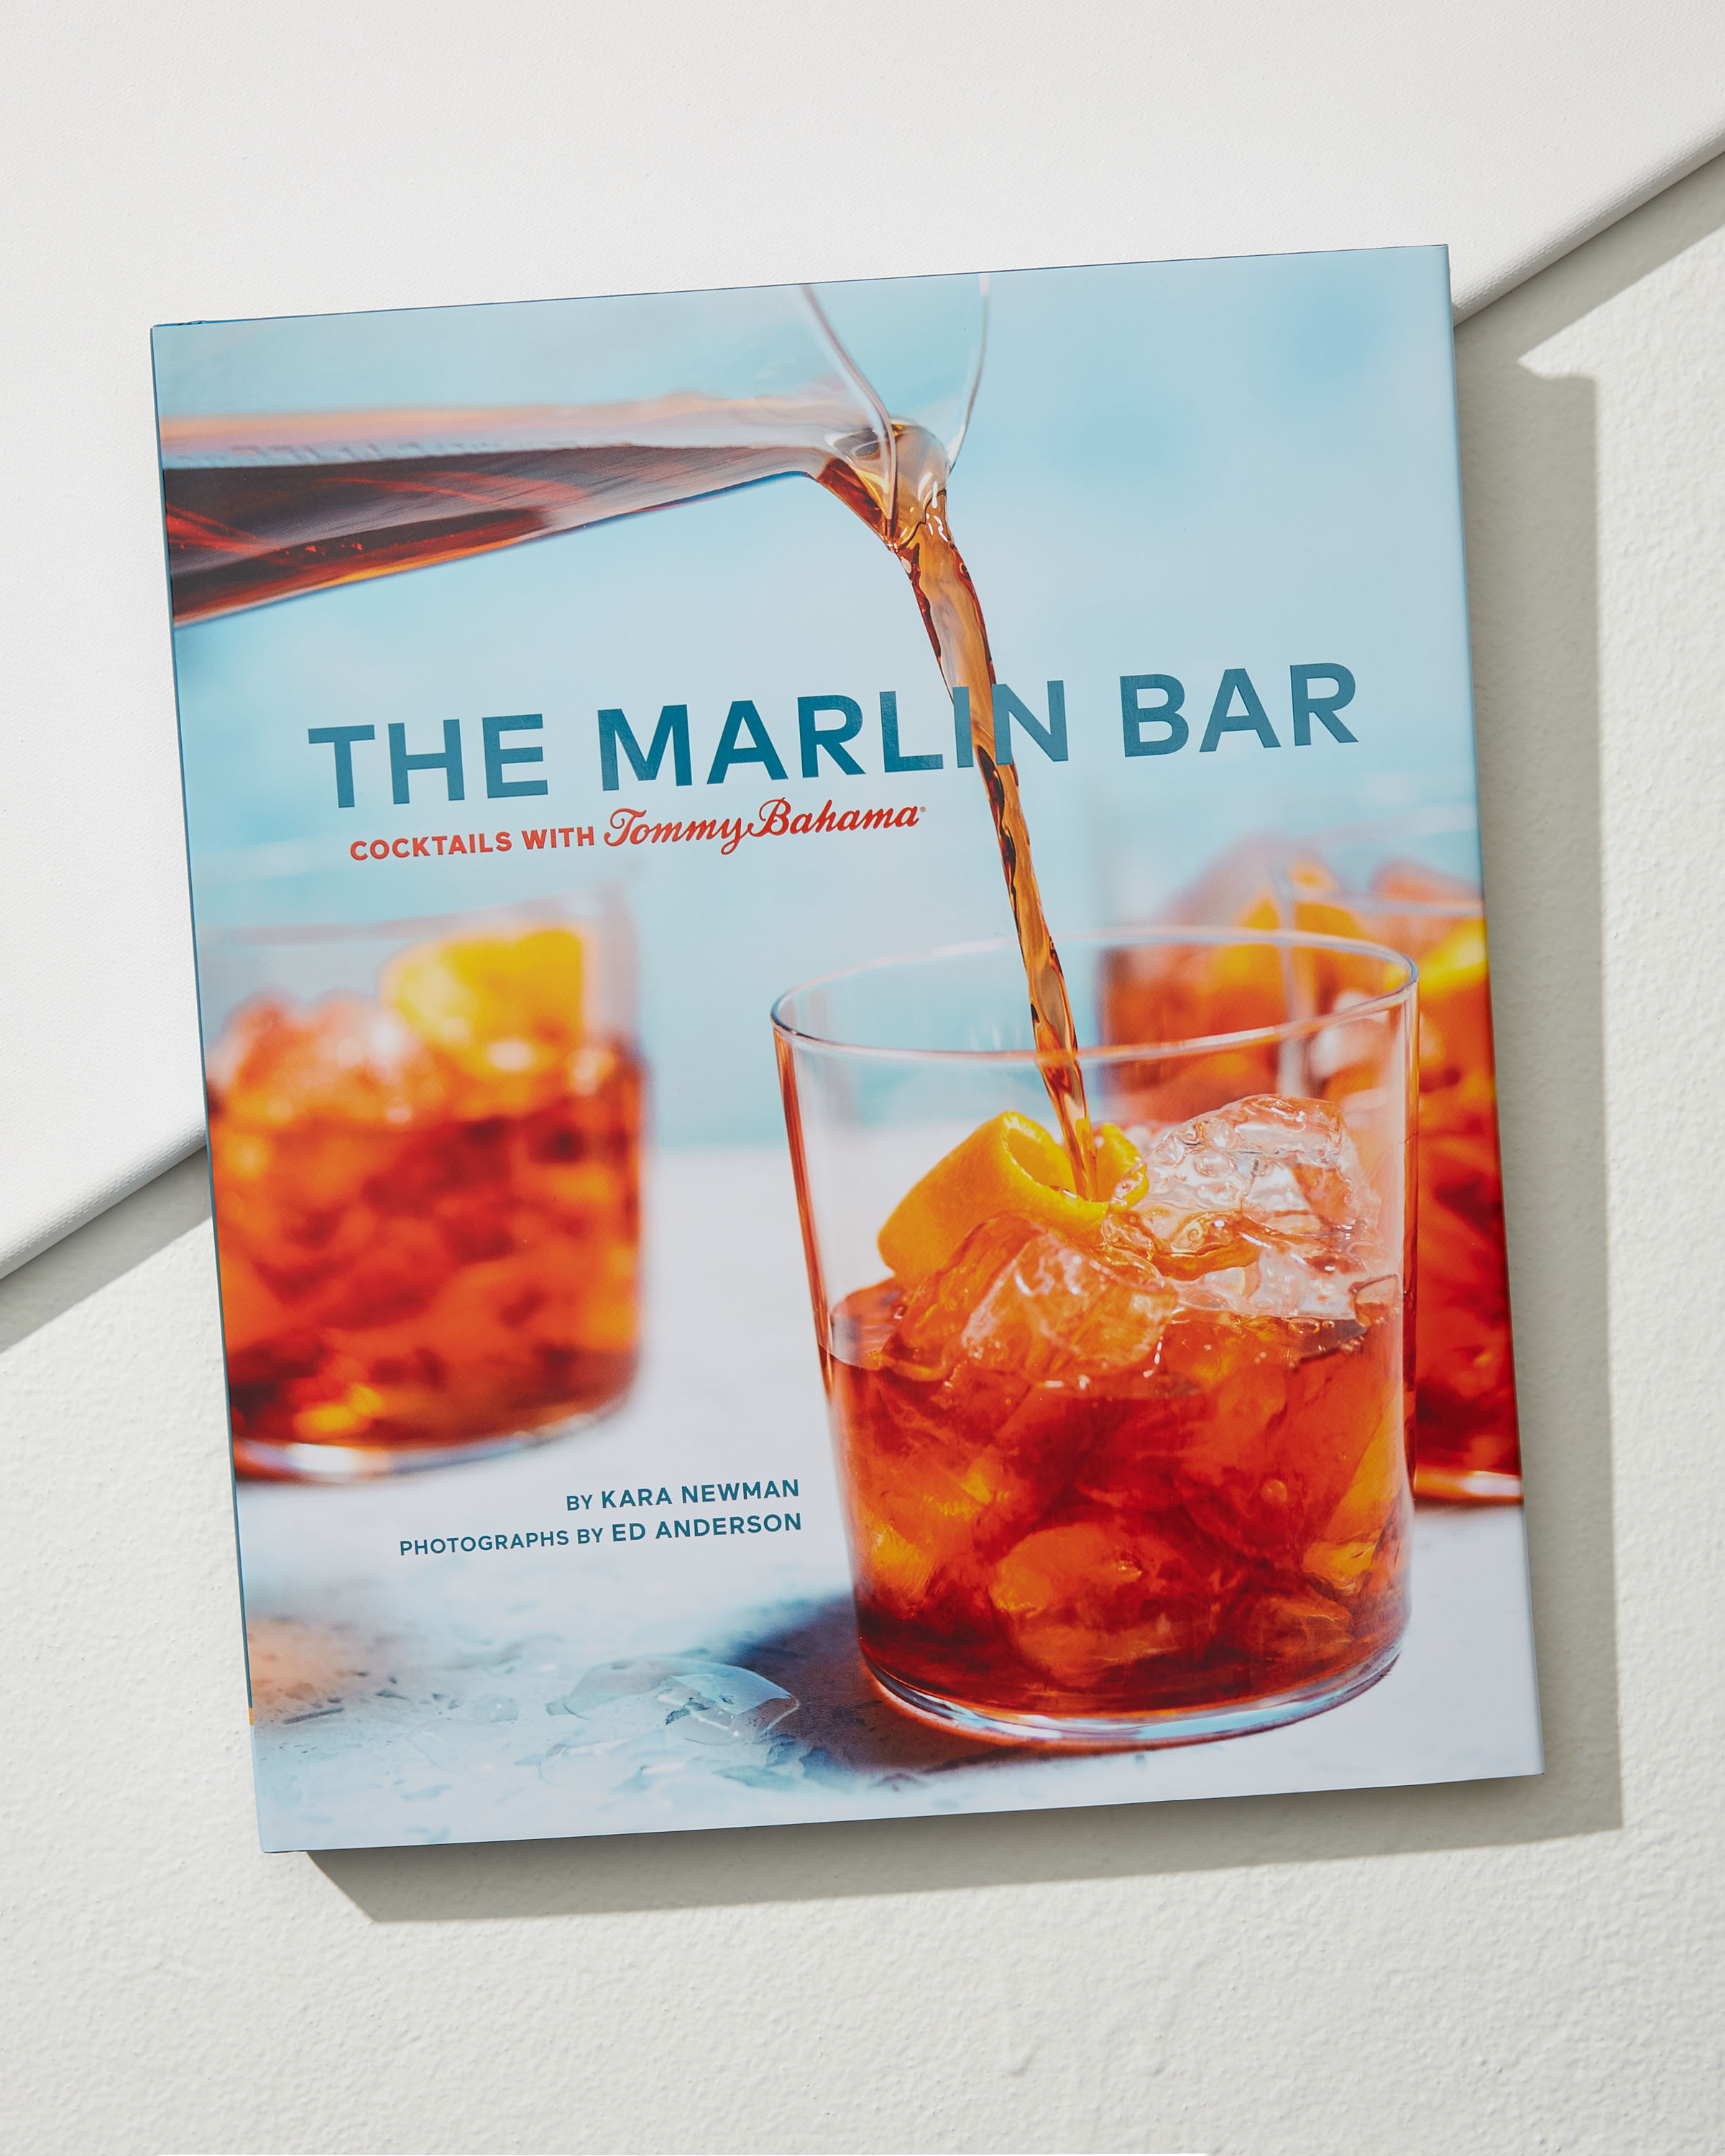 The Marlin Bar: Cocktails with Tommy Bahama from Tommy Bahama